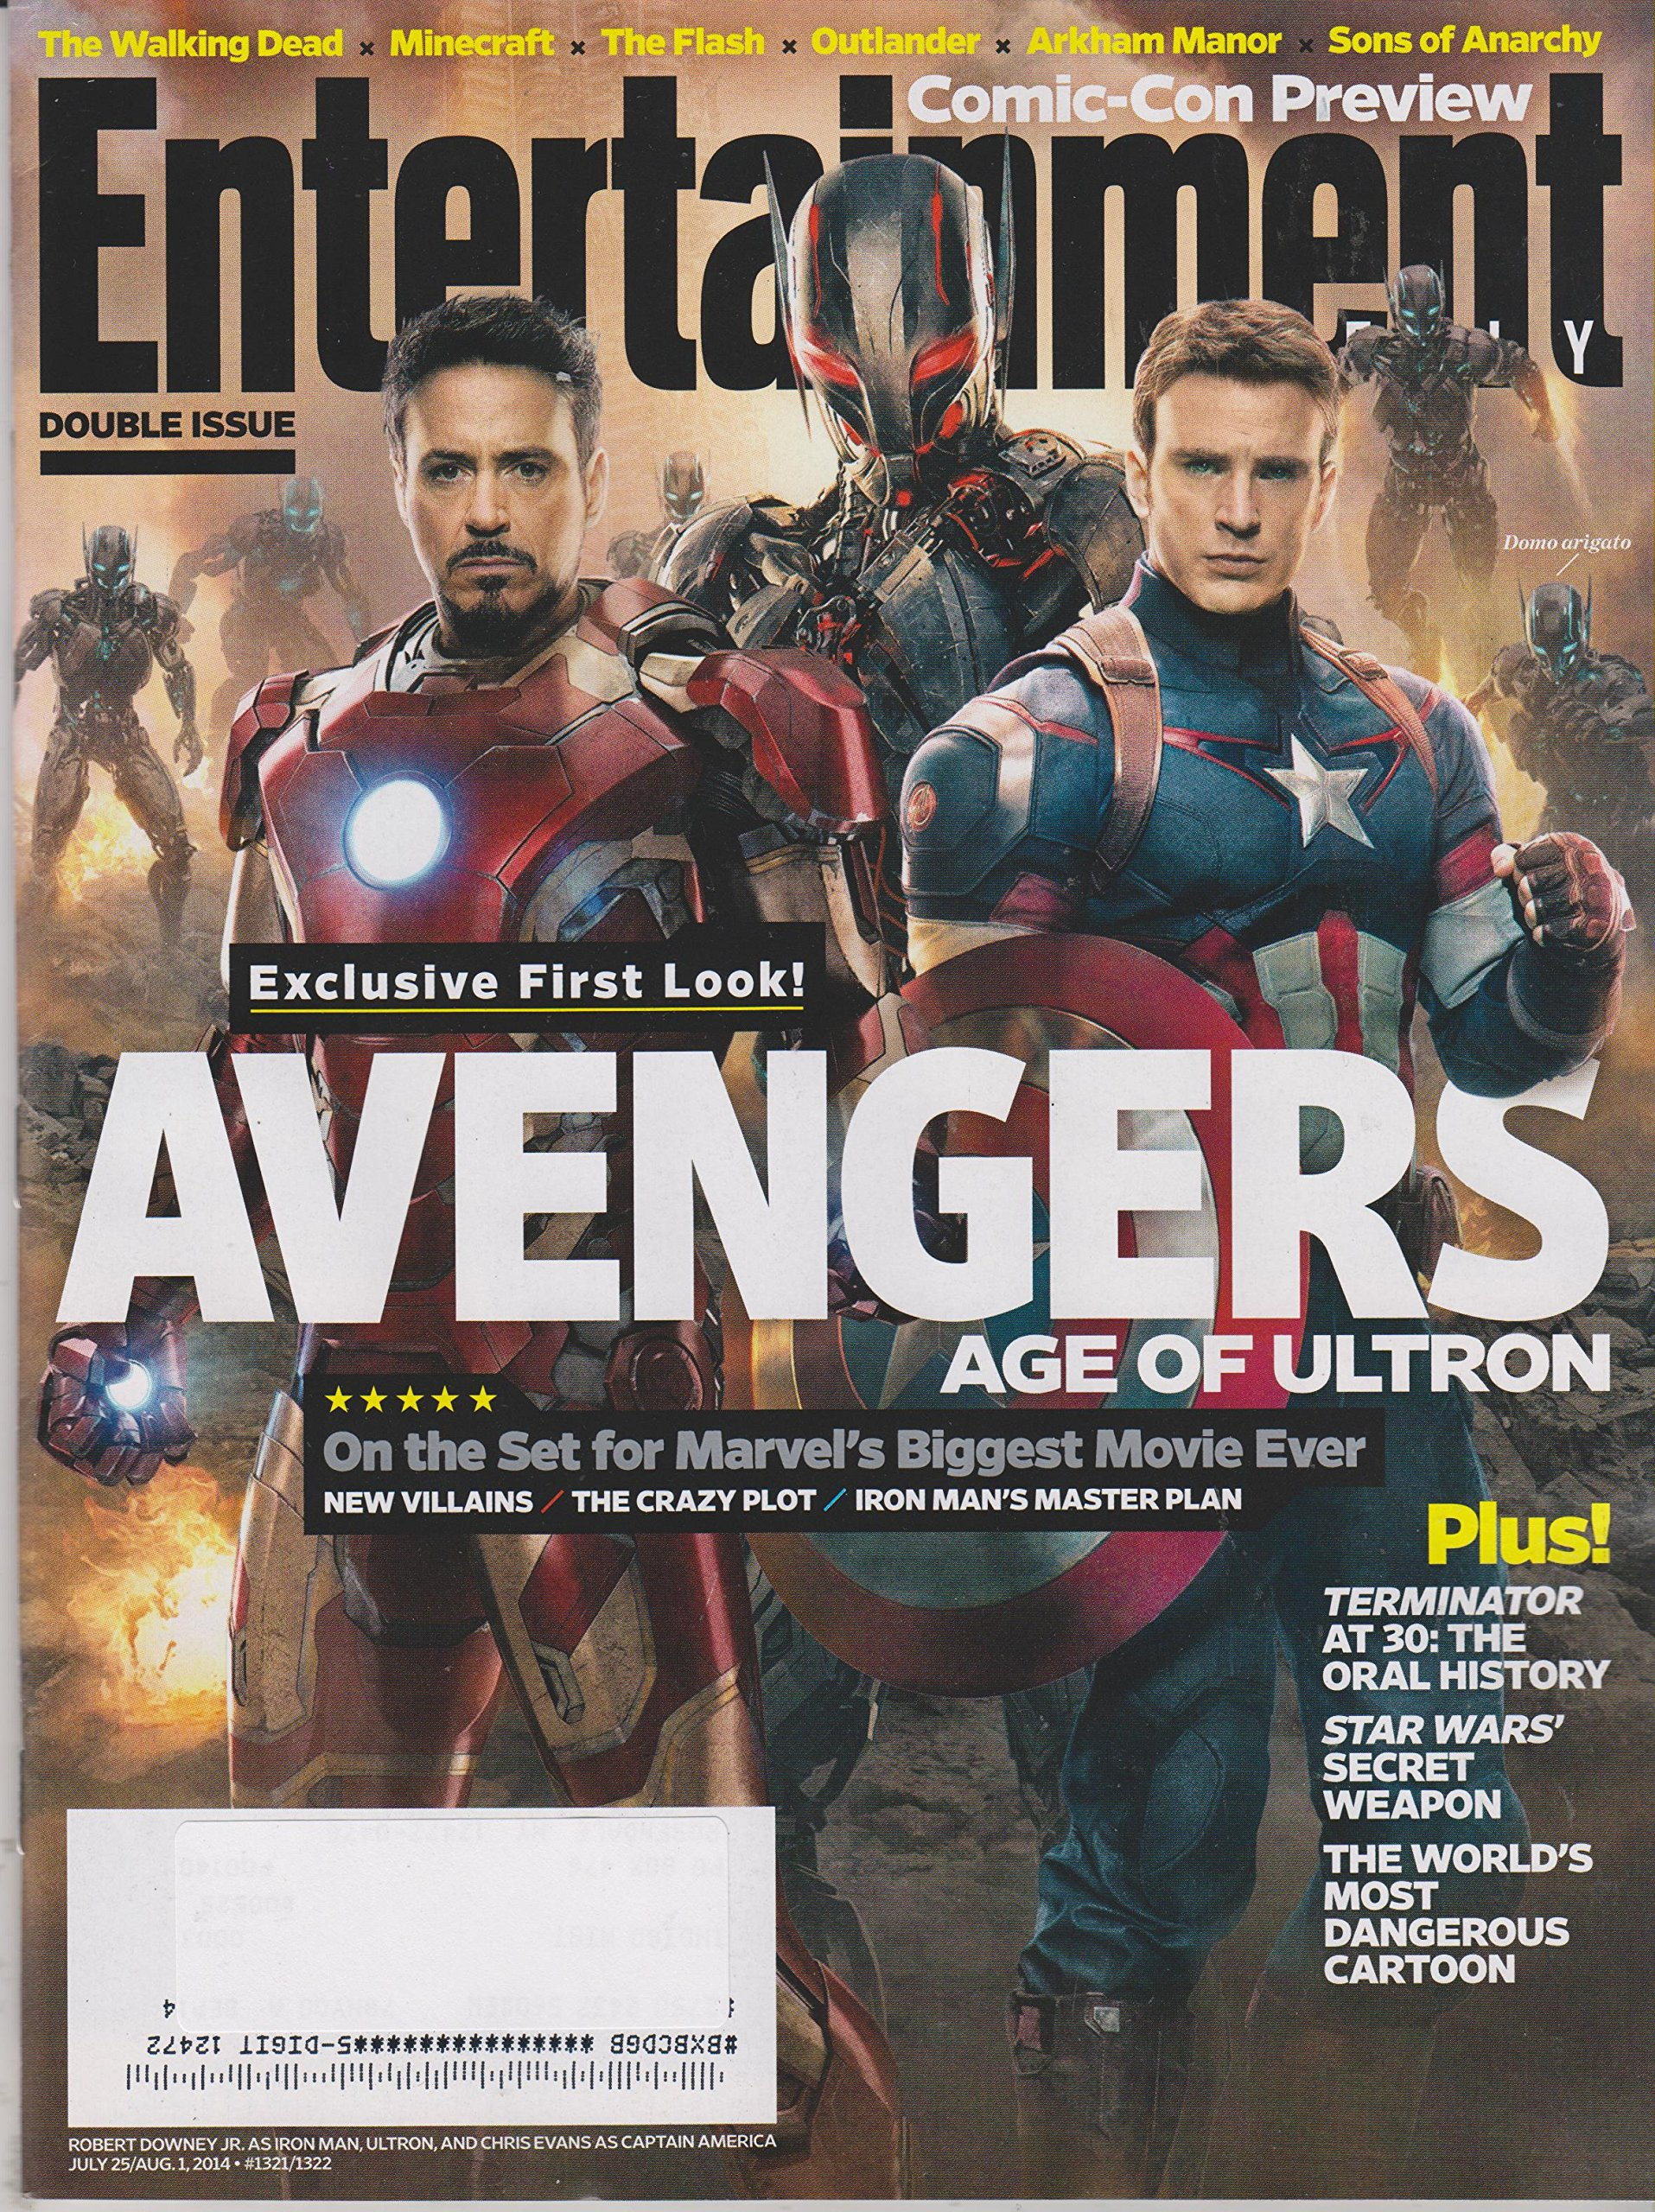 Entertainment Weekly August 1, 2014